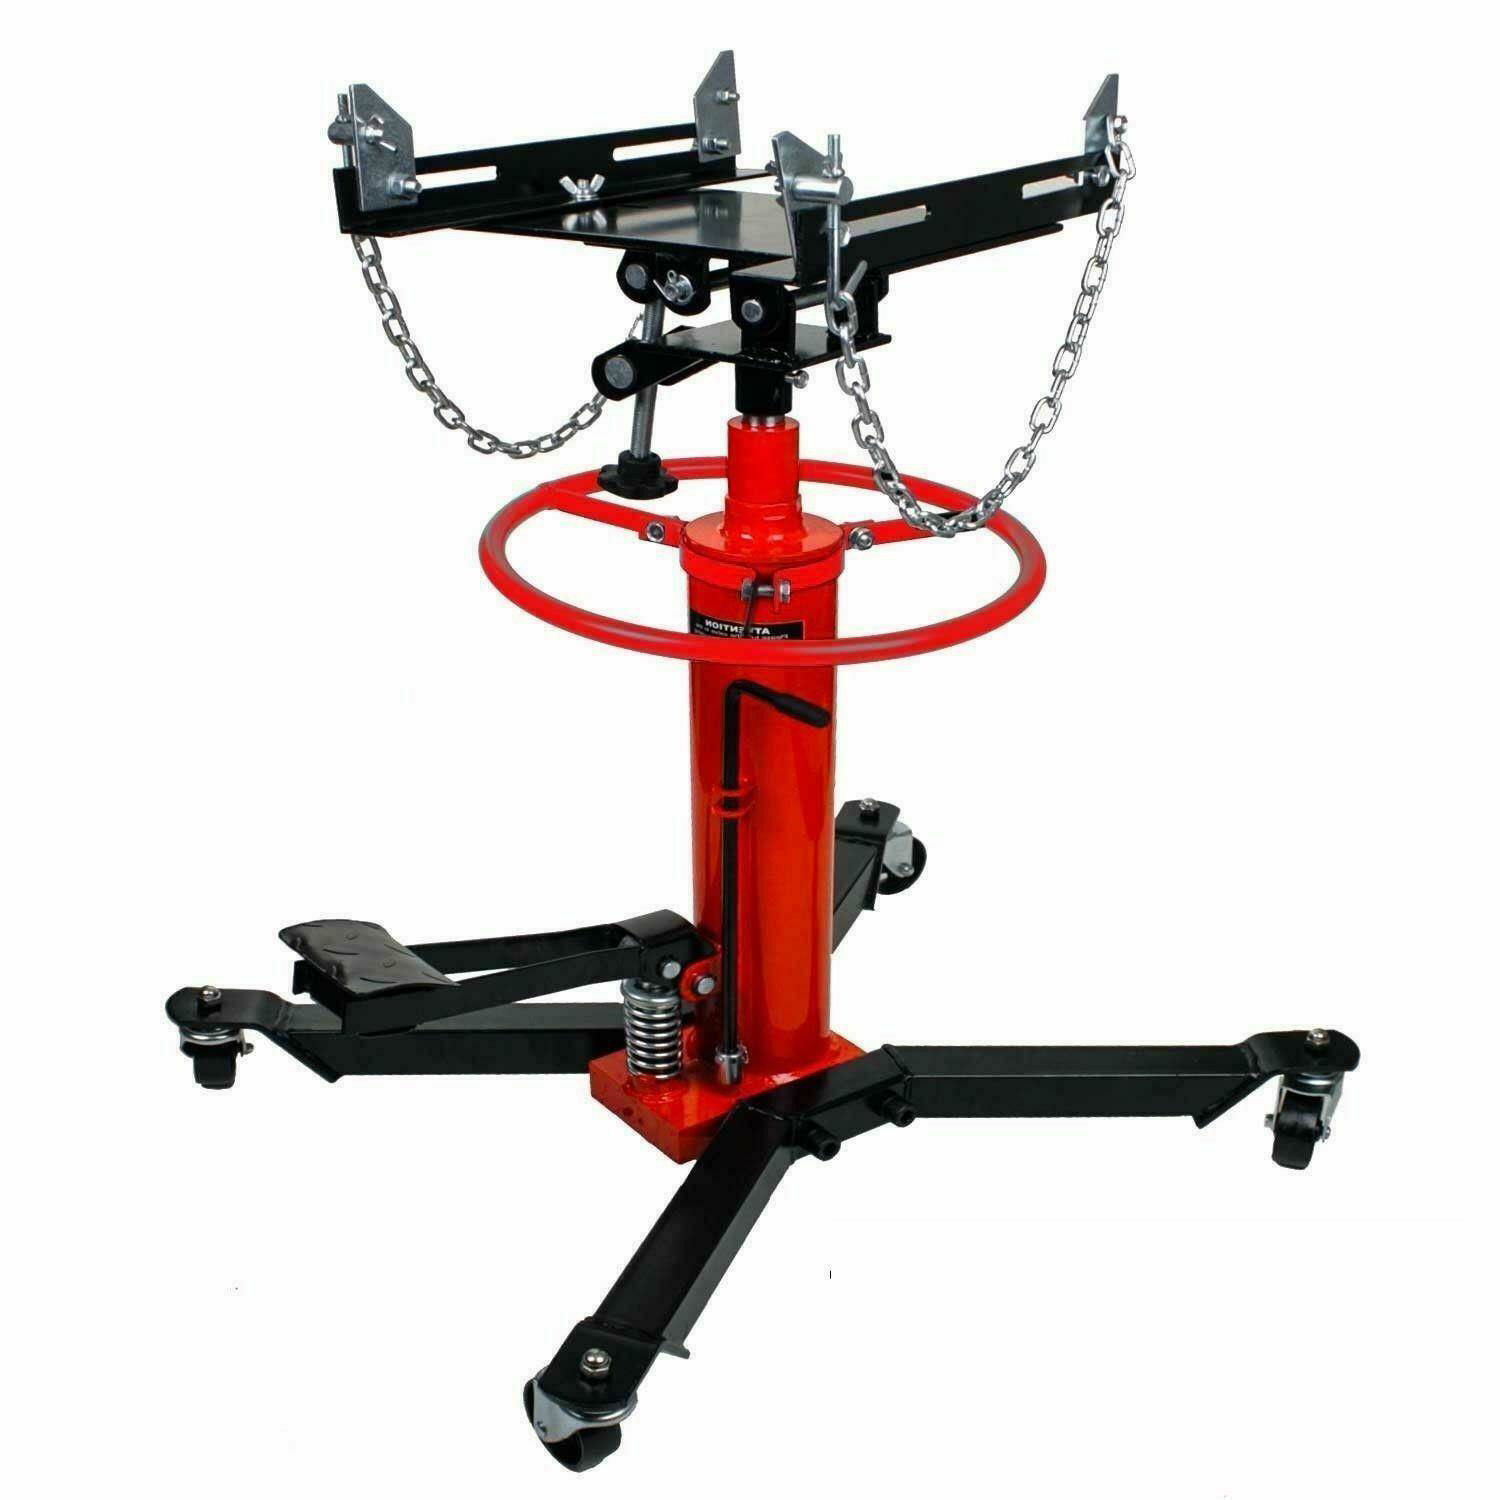 Picture of Hydraulic Transmission Jack - 1100 Lbs